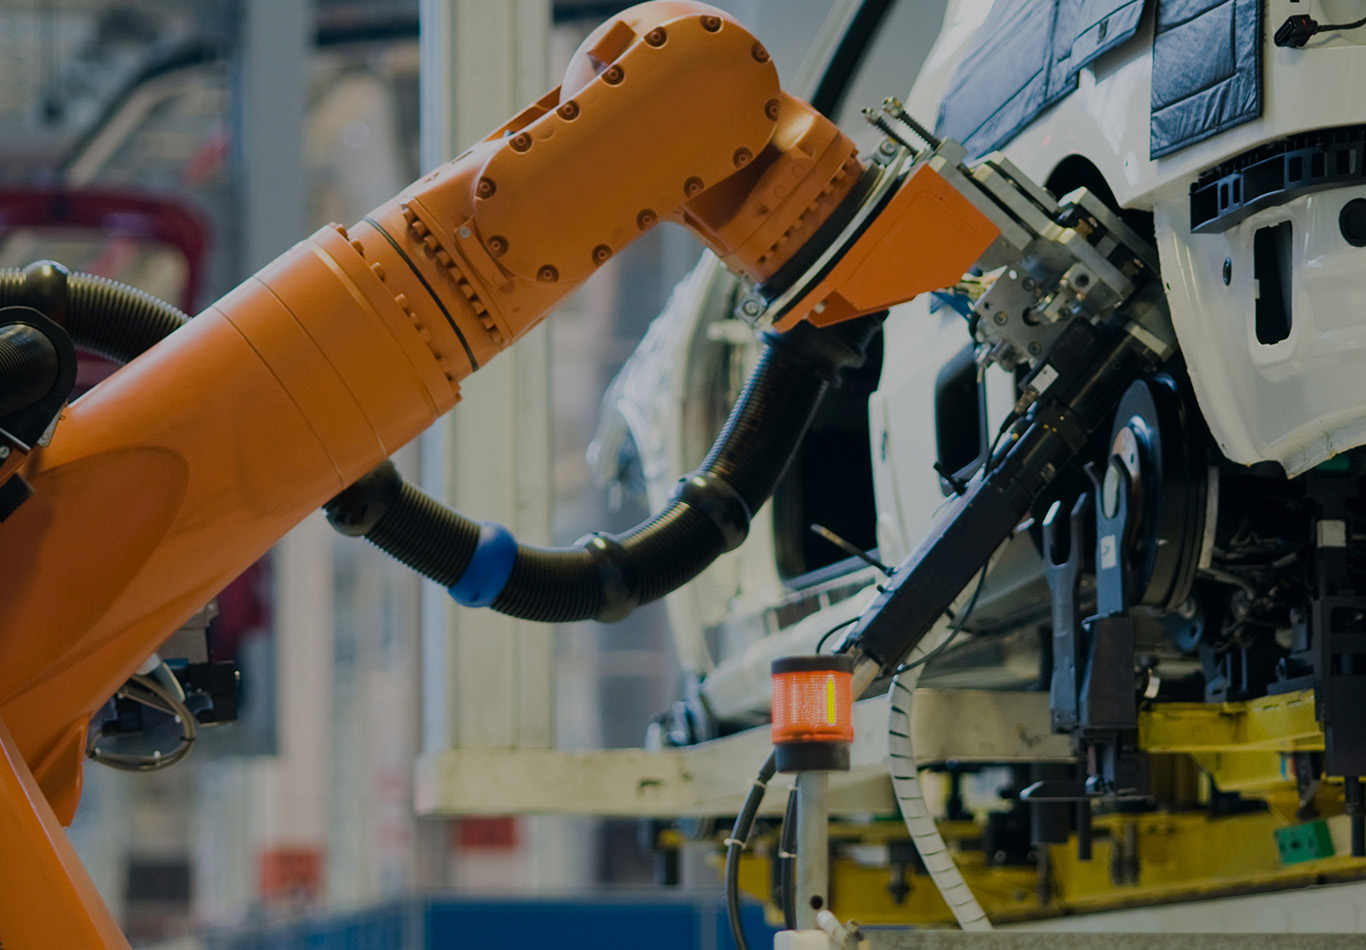 A robot arm is installing something on an automobile in an assembly line.